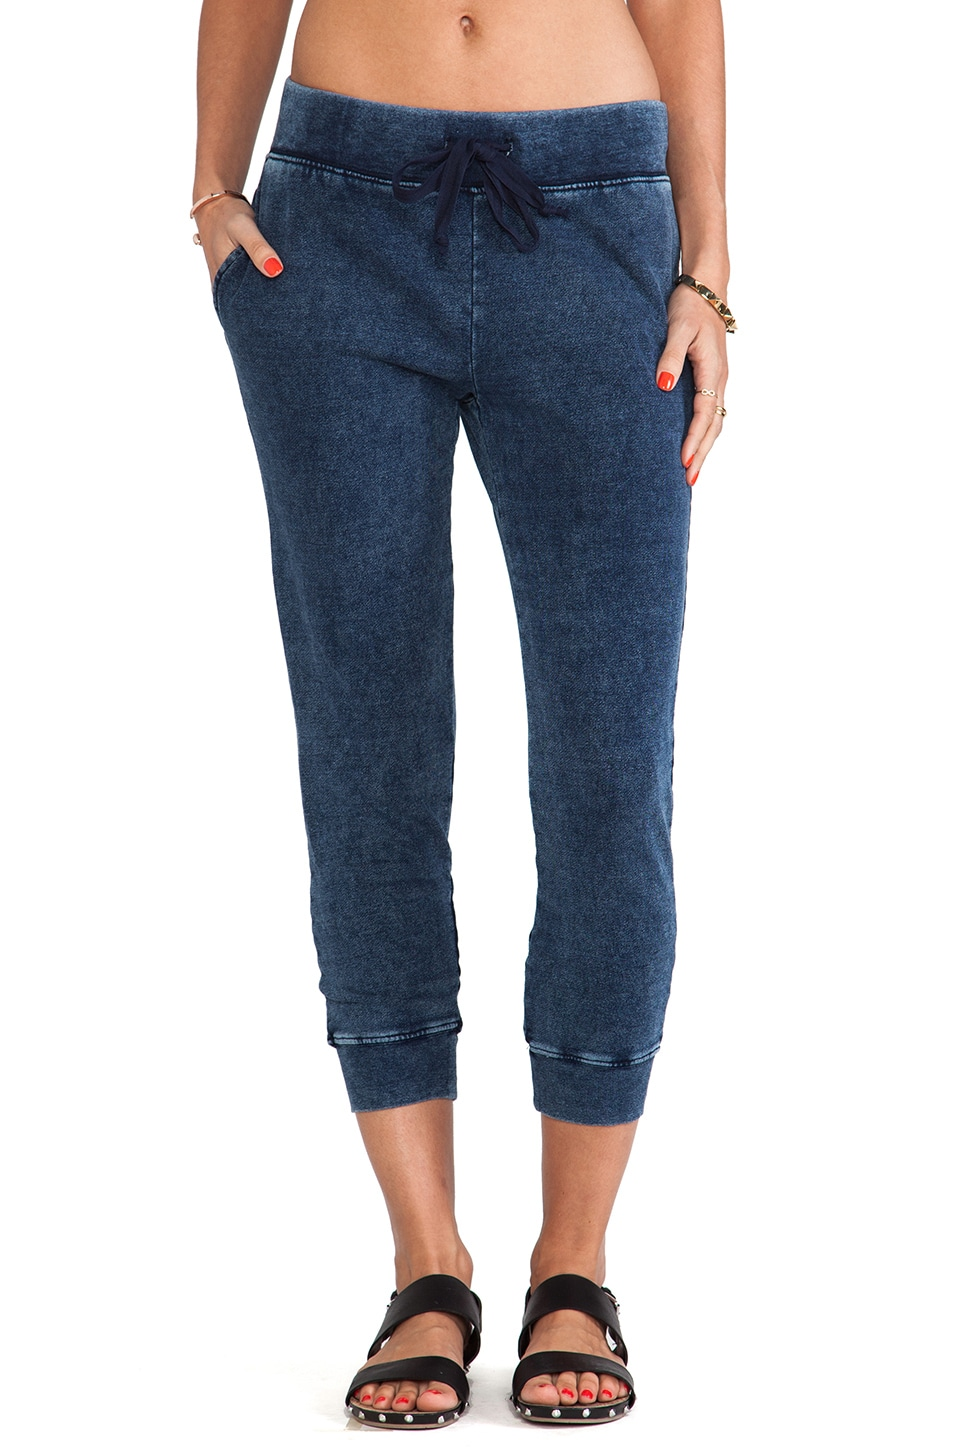 Current/Elliott The Crop Sweatpant in Indigo Haze